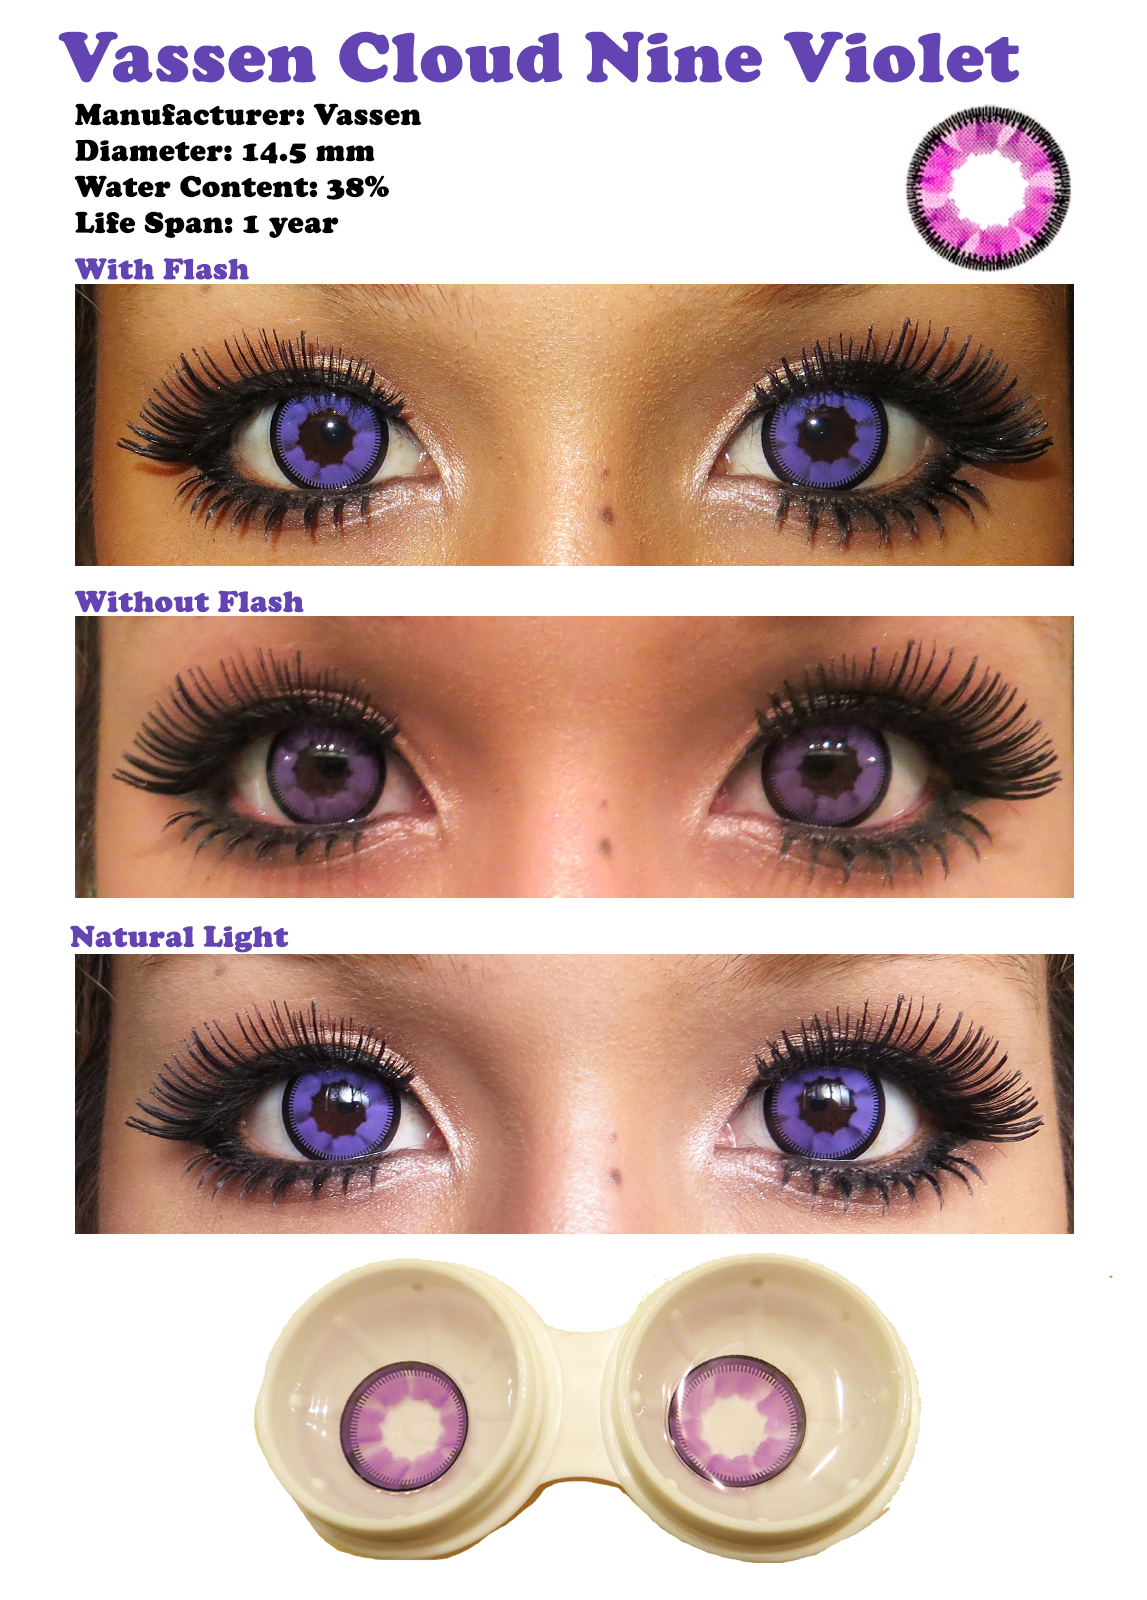 color contacts for dark eyes | vassen cloud nine violet sponsored